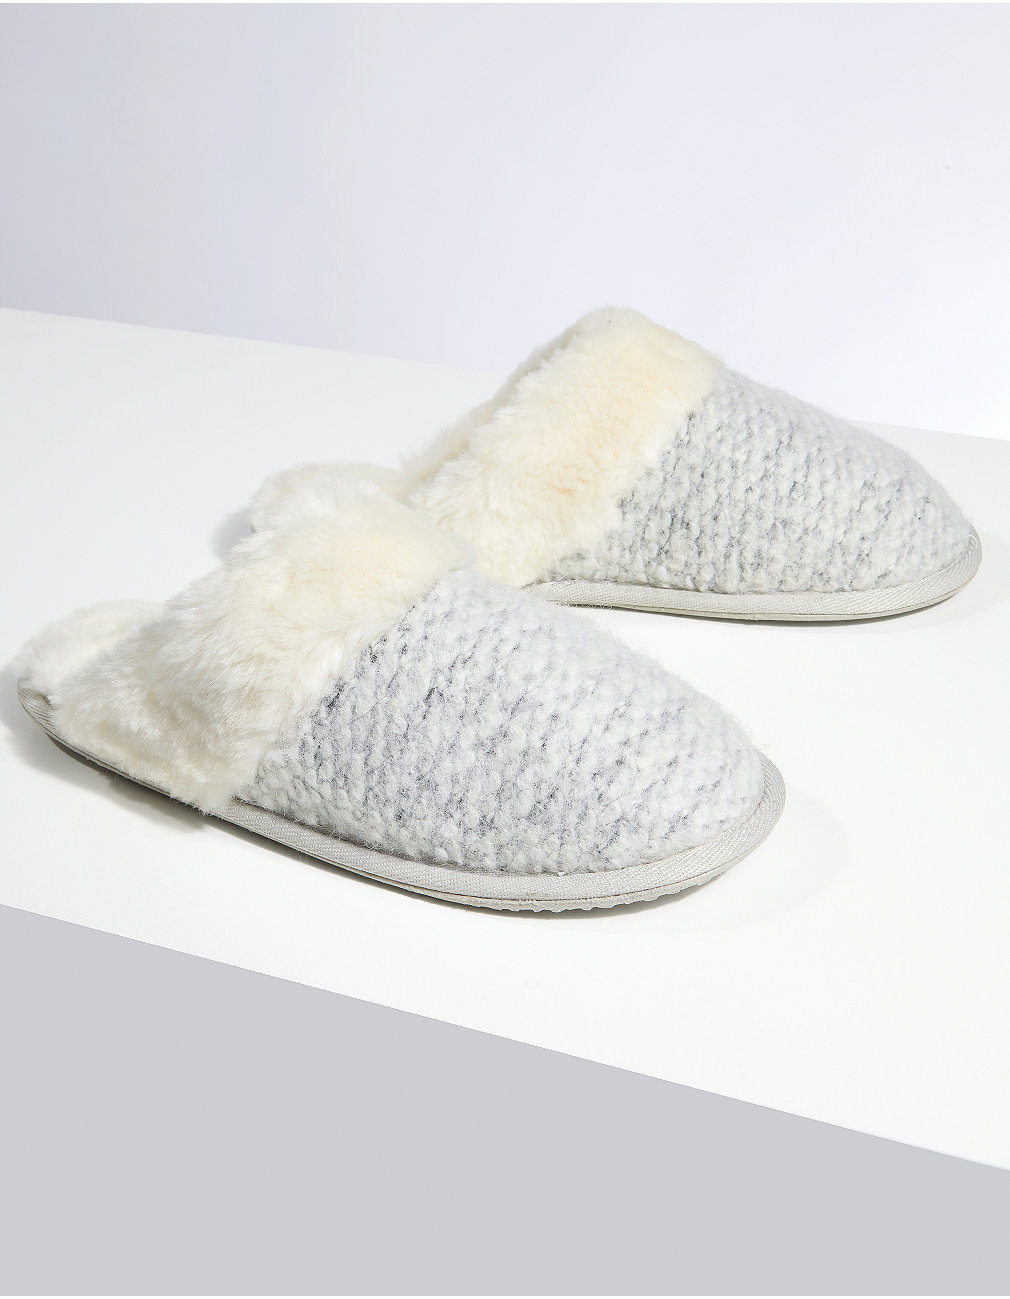 fb246397c6bed Textured Felt Mule Slippers